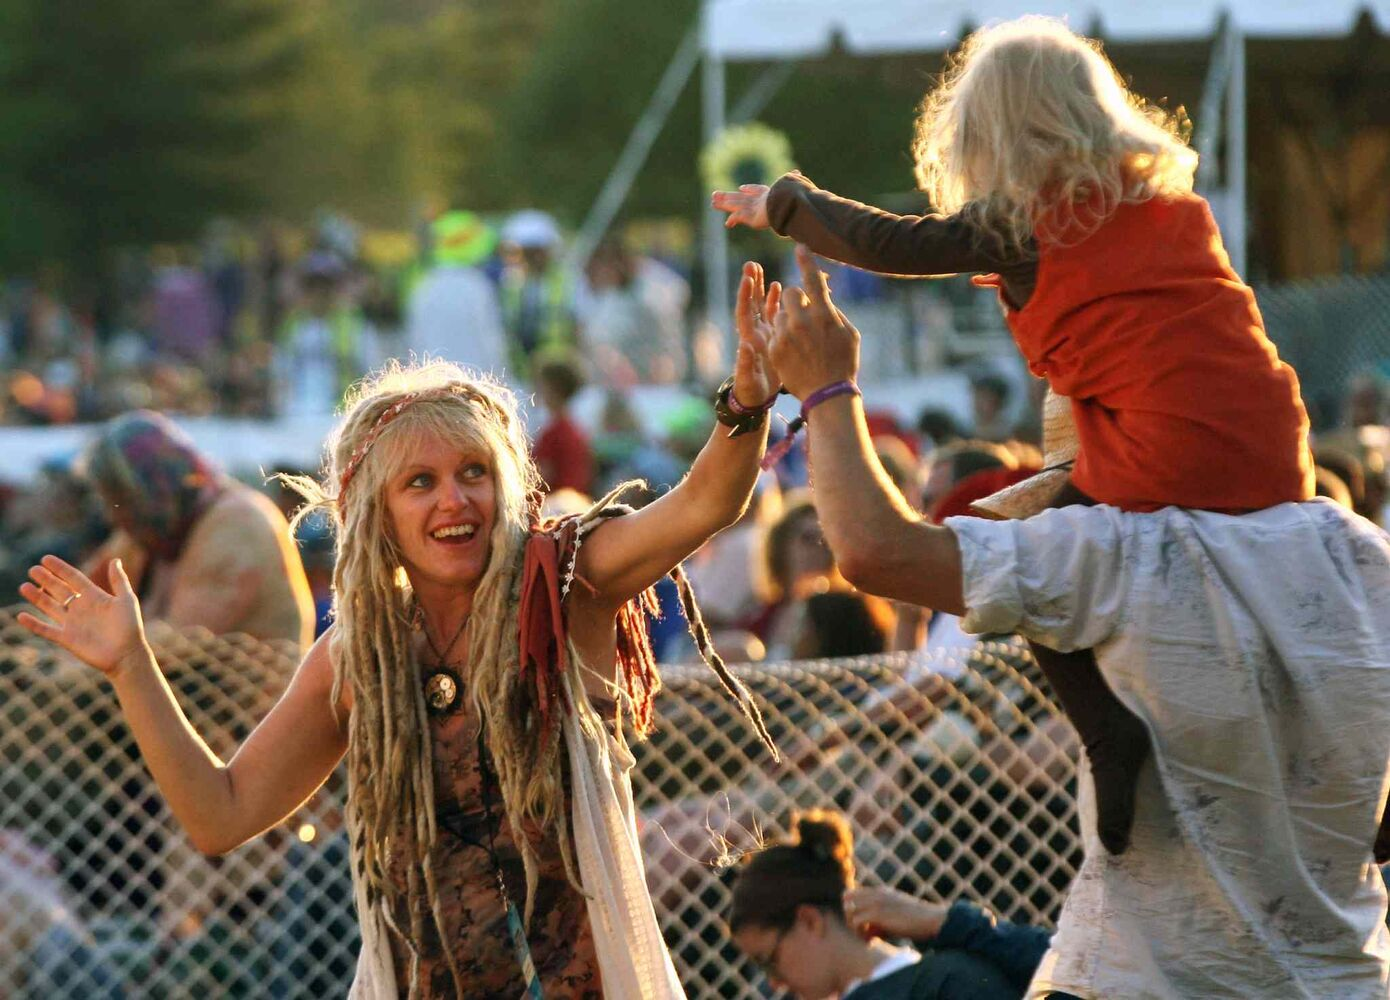 Briar MacDonald goes for a ride on friend Marc Simard's shoulders as mom Devaki MacDonald looks on at the  Winnipeg Folk Festival Friday night. (Joe Bryksa / Winnipeg Free Press)